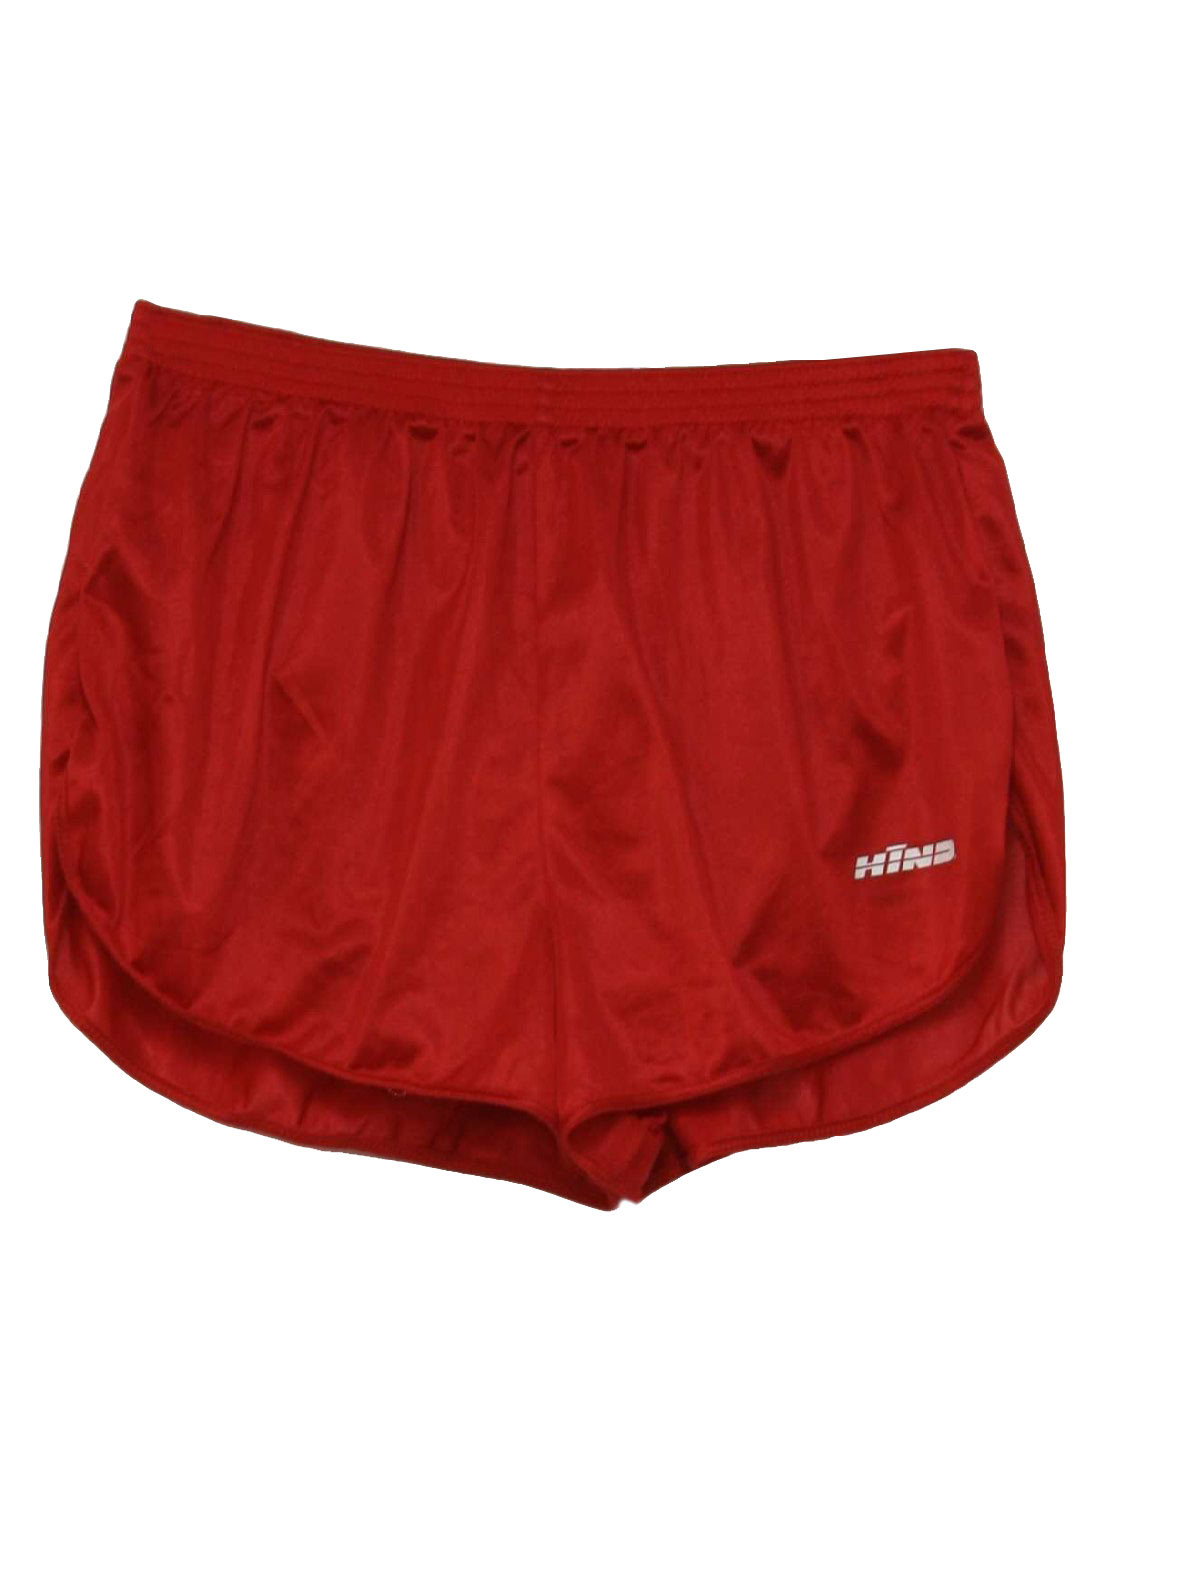 Super Short Shorts Men Mens Red Nylon Super Short